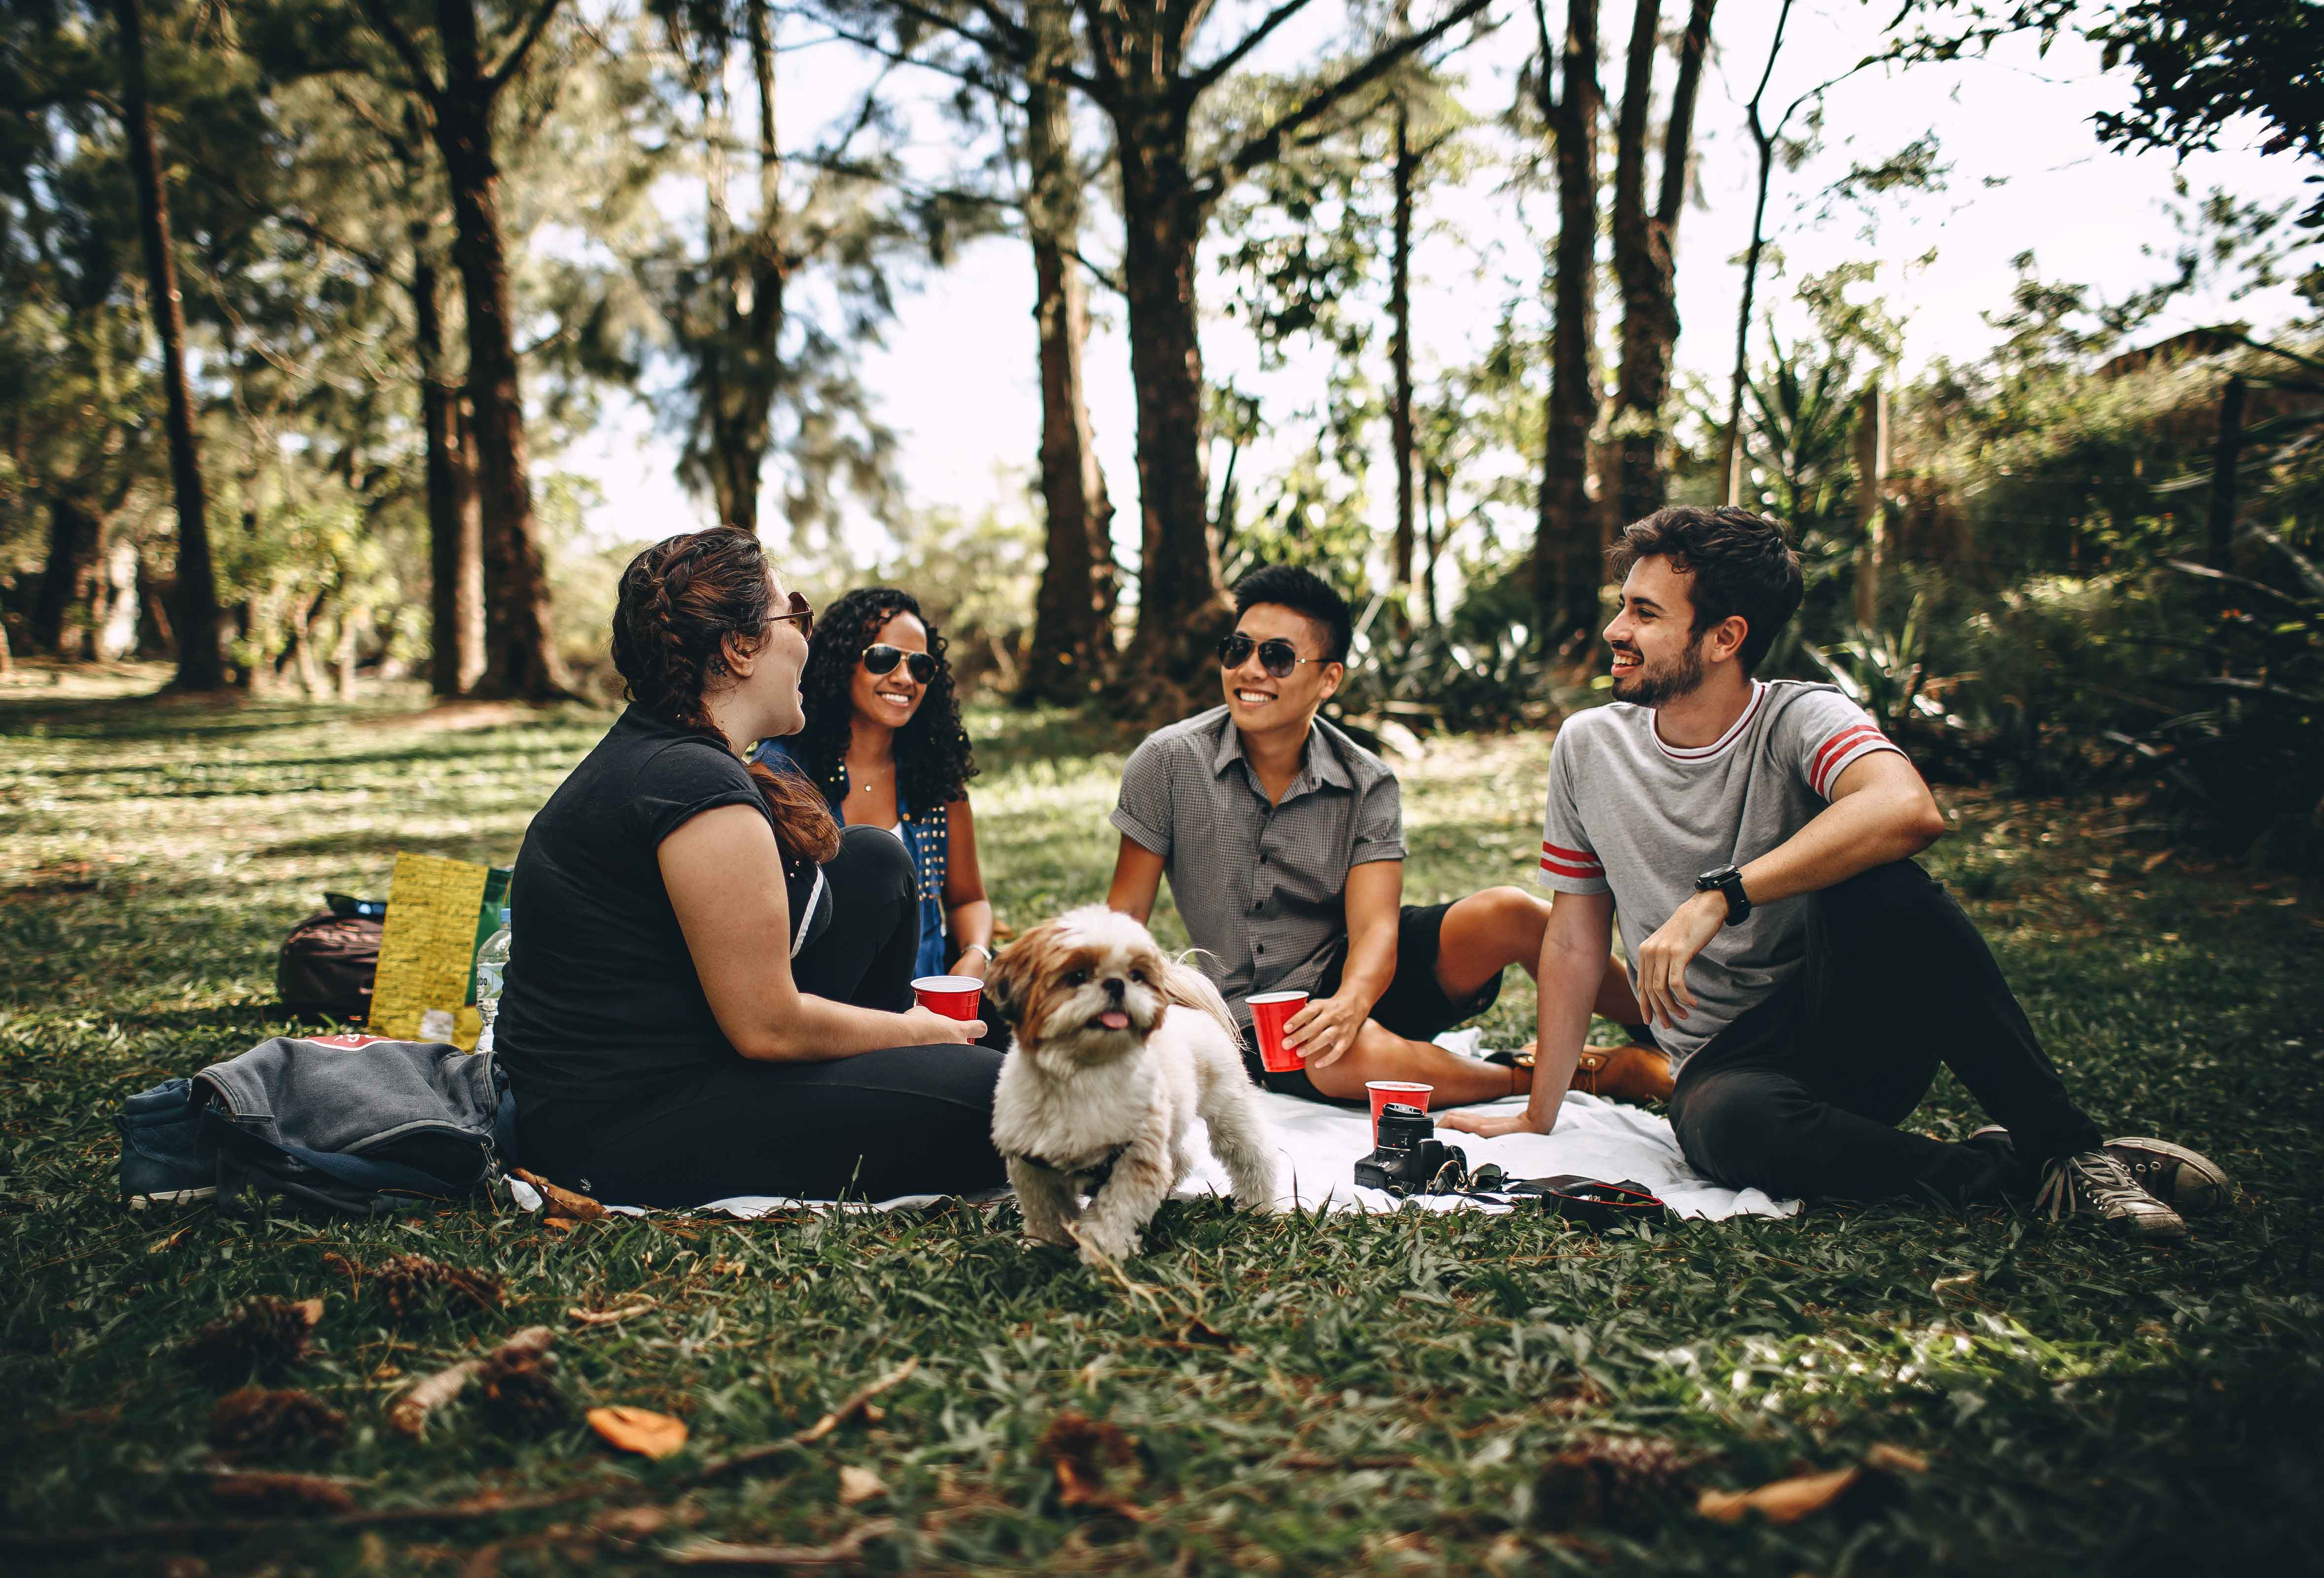 Four people sitting on a blanket on the grass, enjoying a picnic and a cute dog